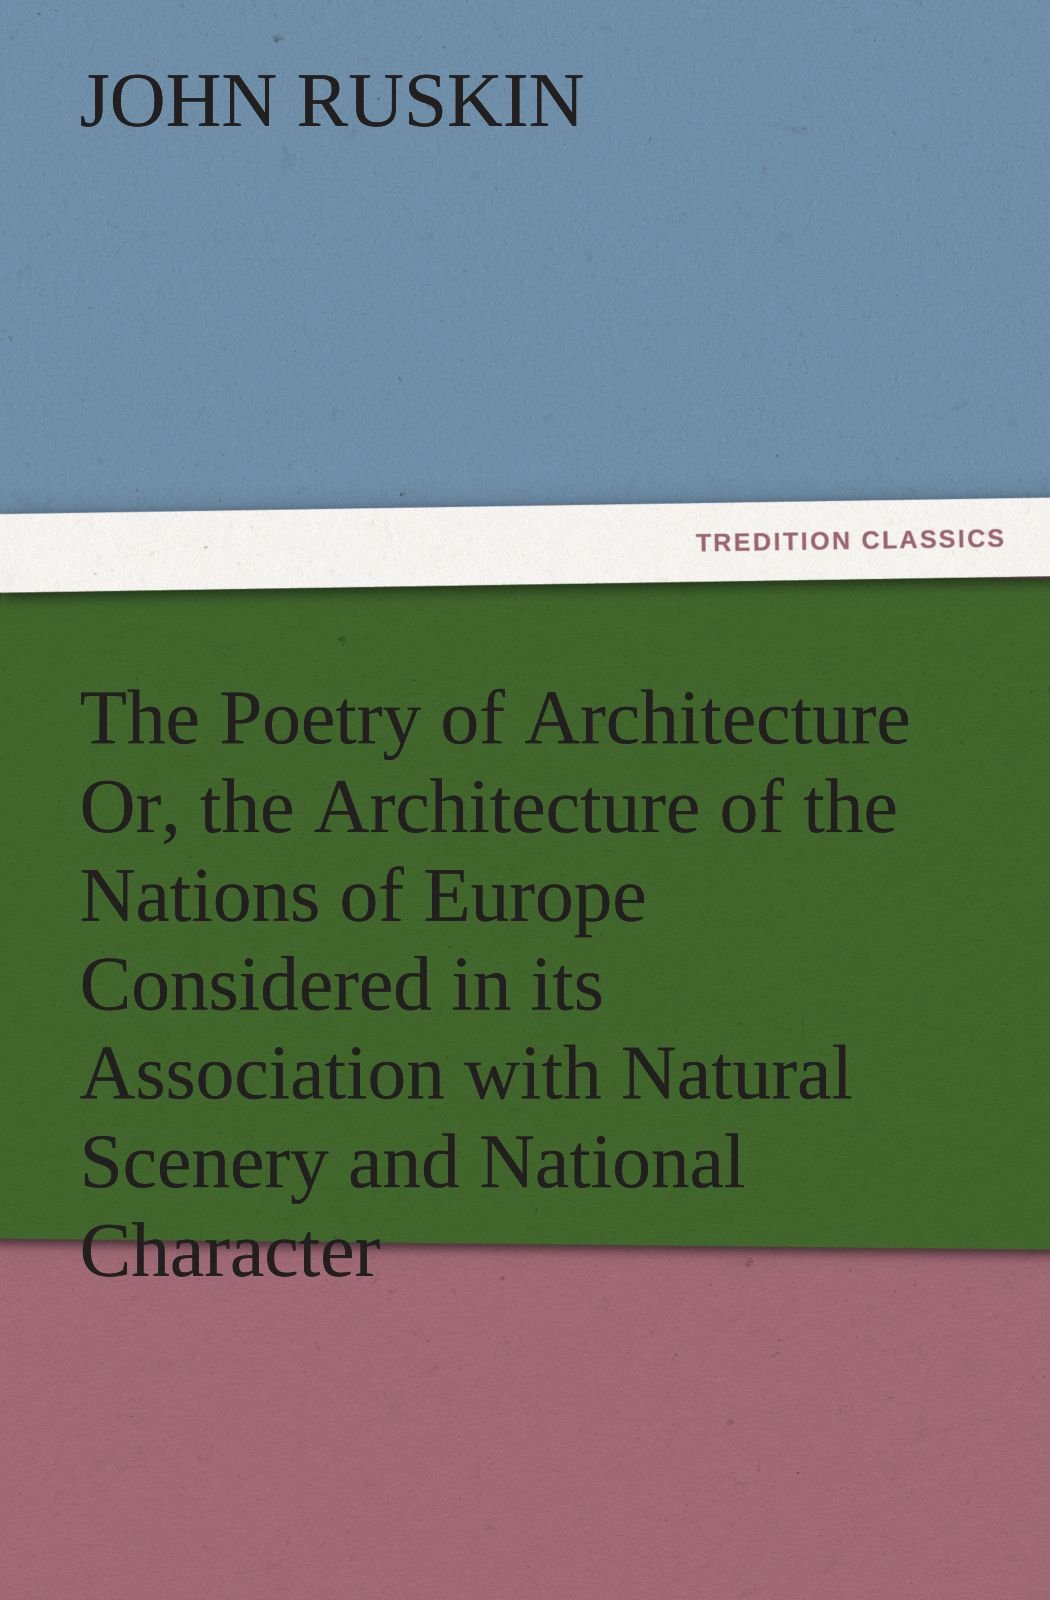 Download The Poetry of Architecture Or, the Architecture of the Nations of Europe Considered in its Association with Natural Scenery and National Character (TREDITION CLASSICS) PDF